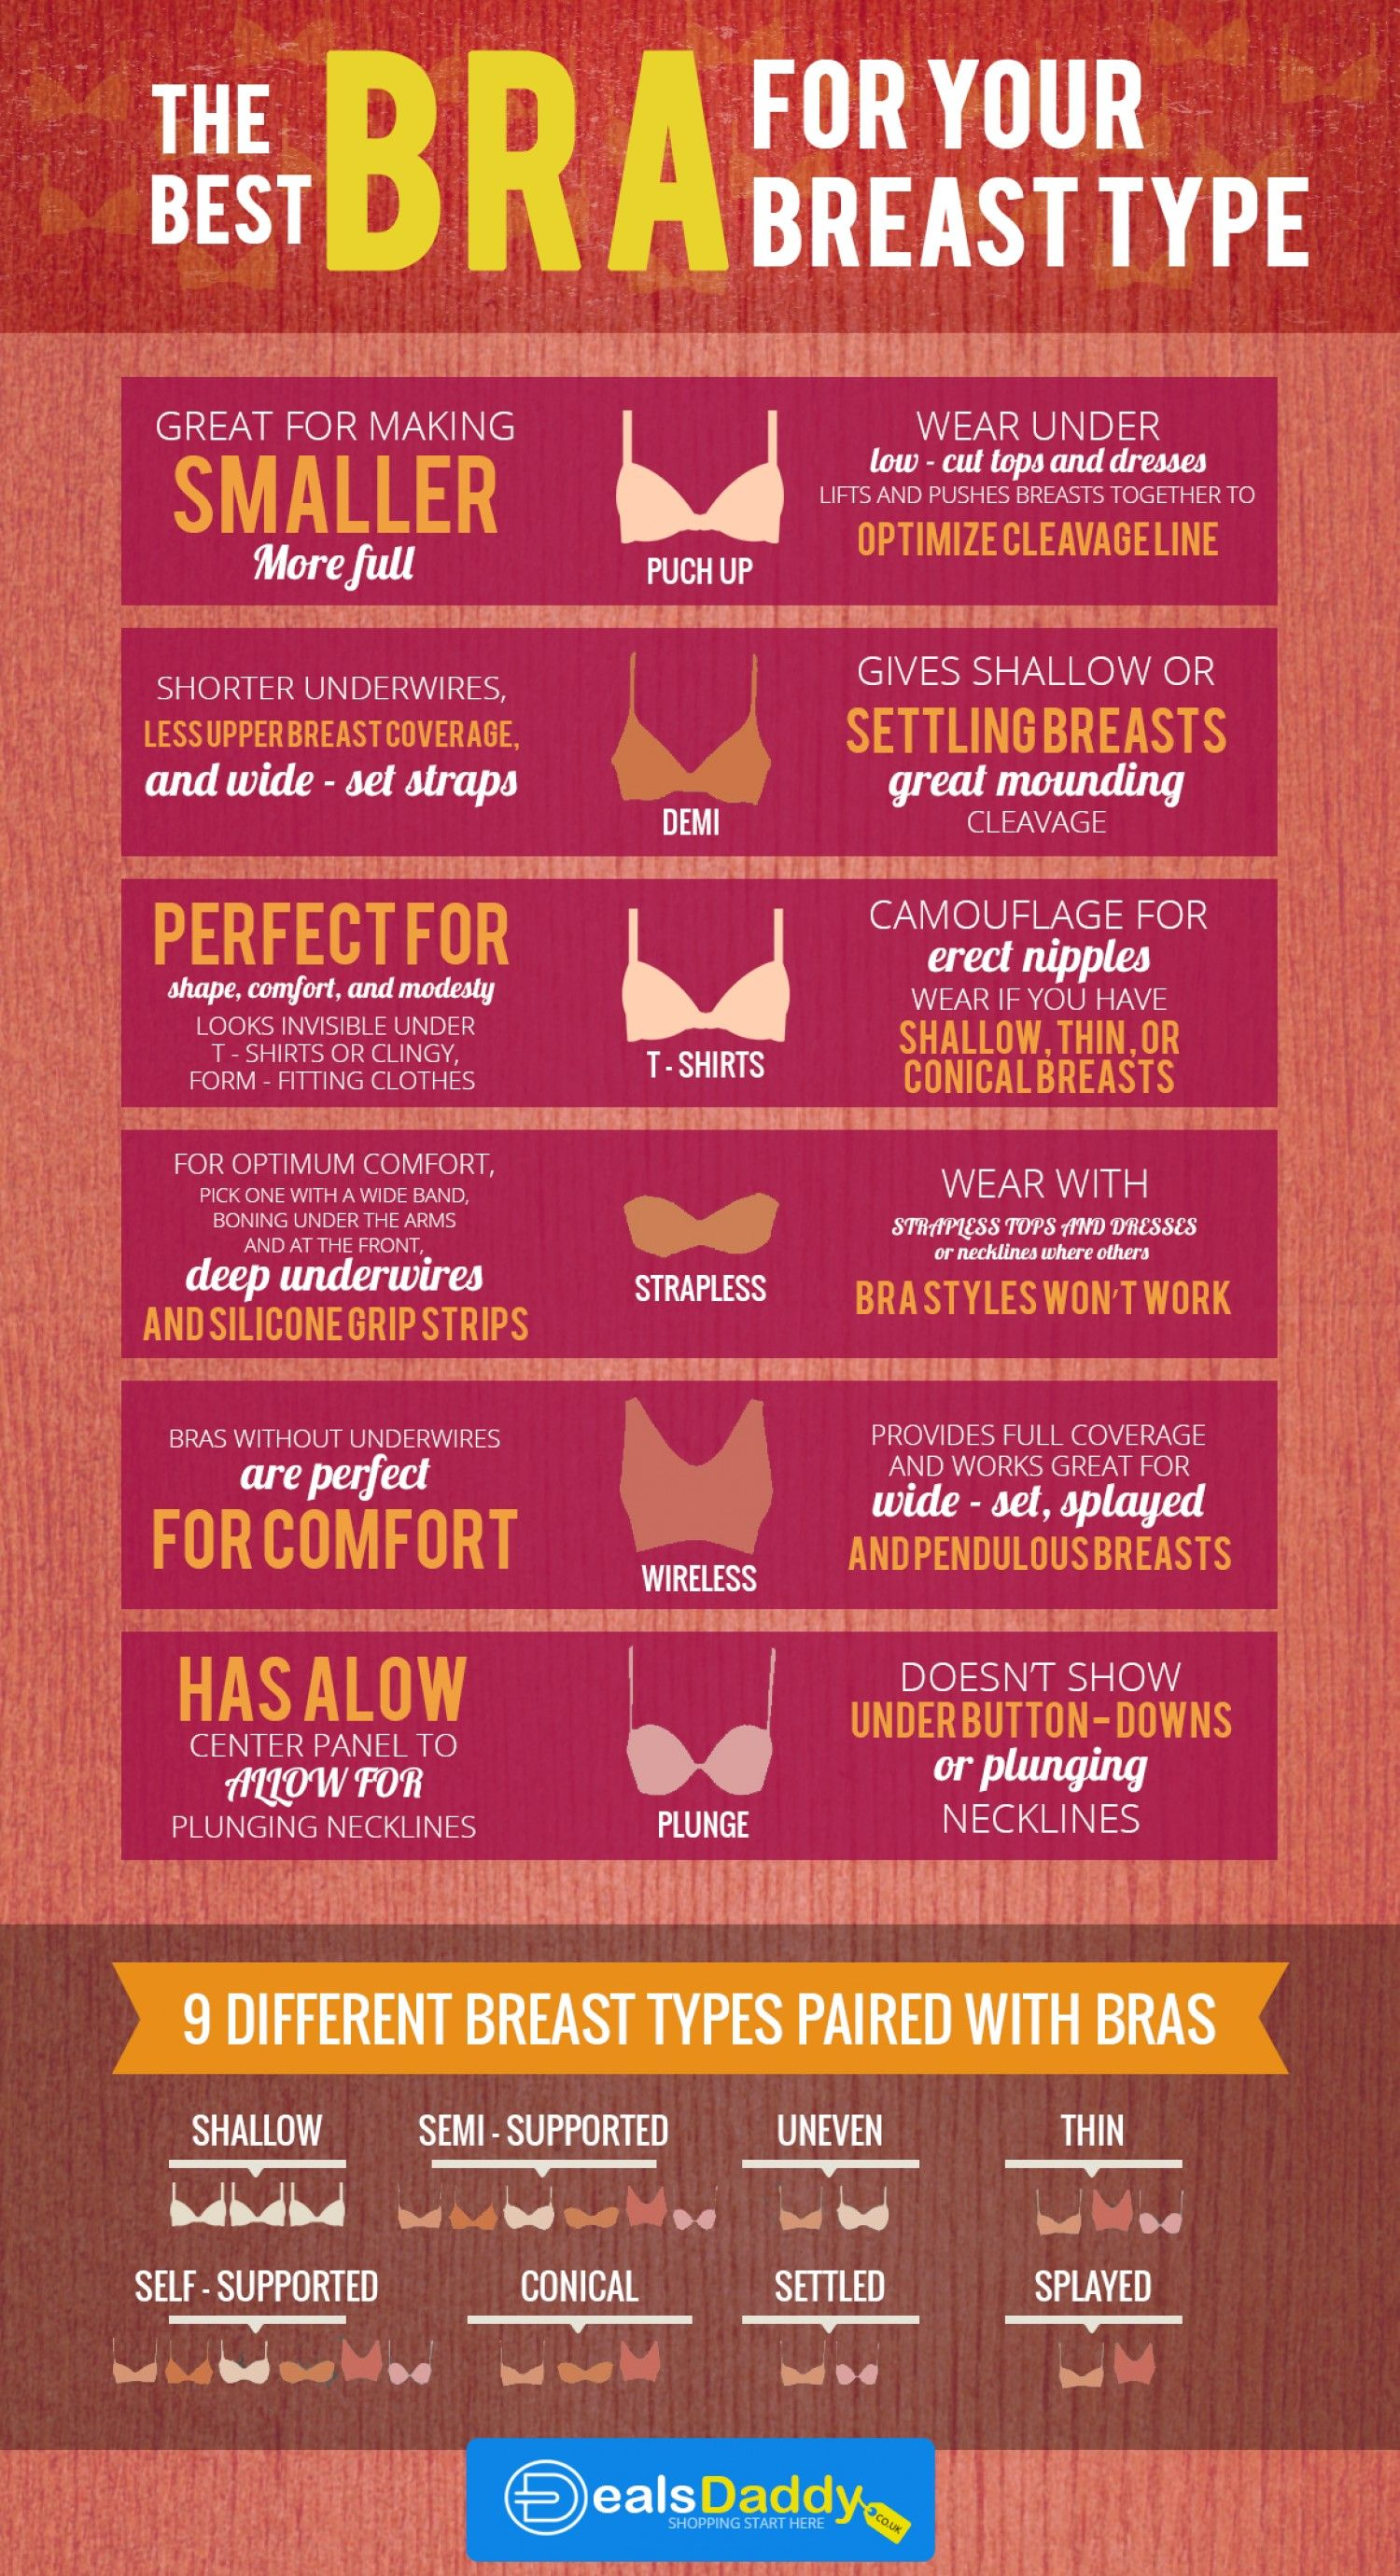 31349657d4 The Best BRA for your Breast Type Infographic